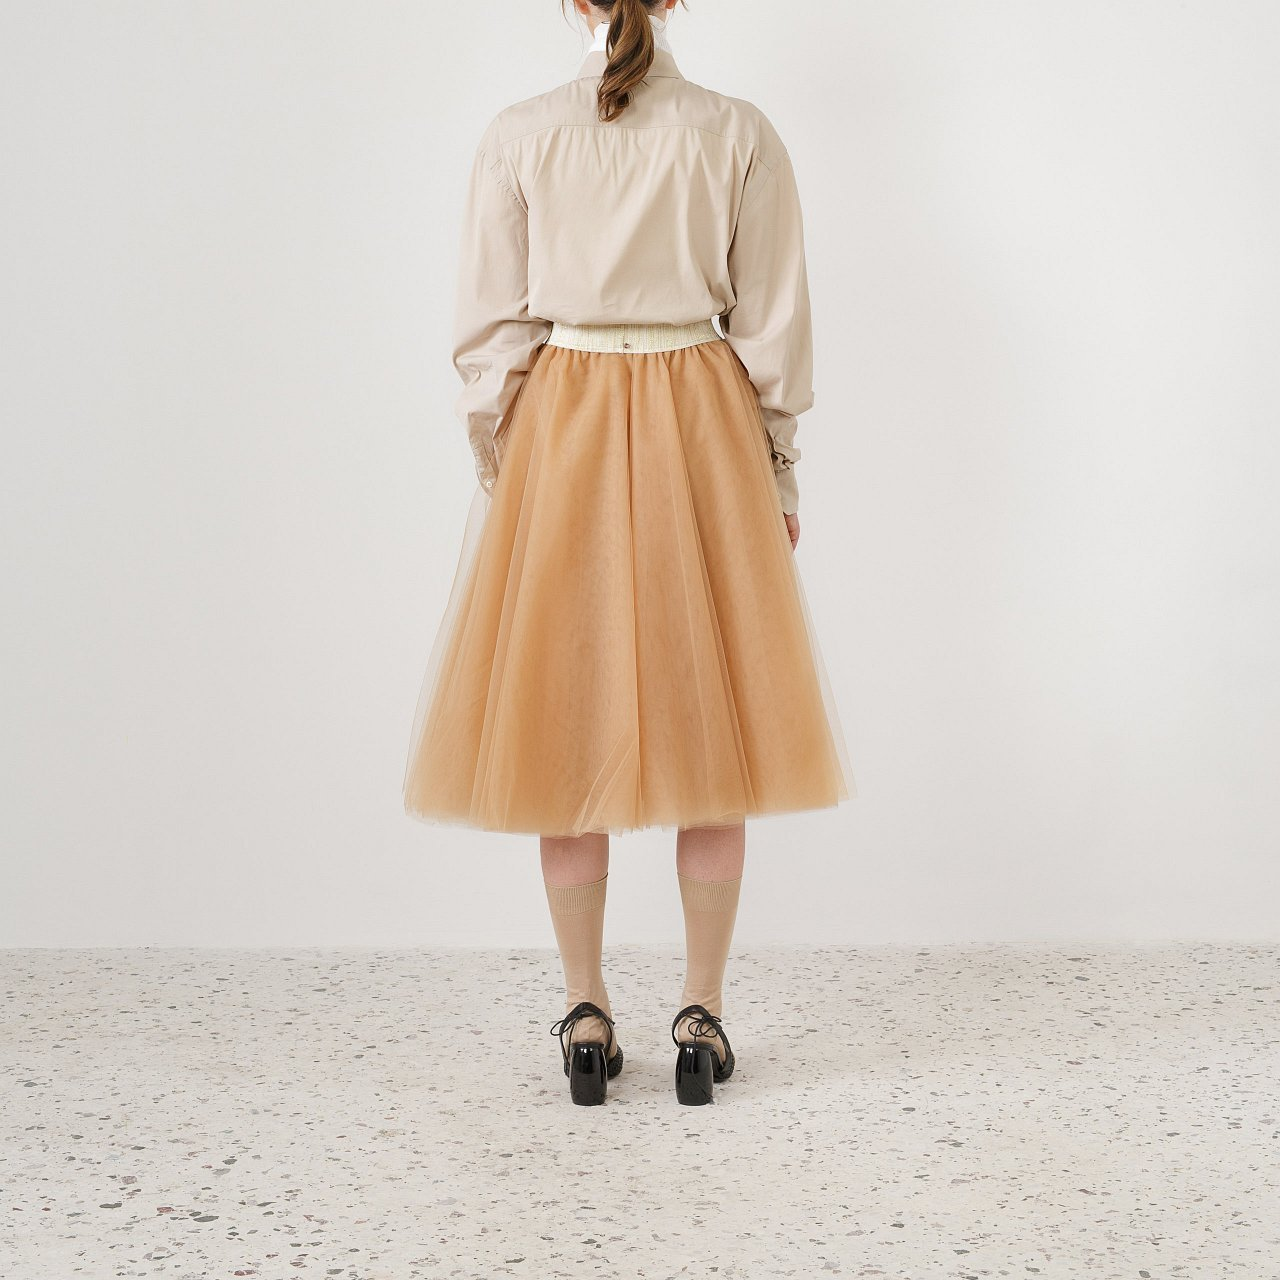 Product preview: Tulle Tutu Skirt Caramel Midi